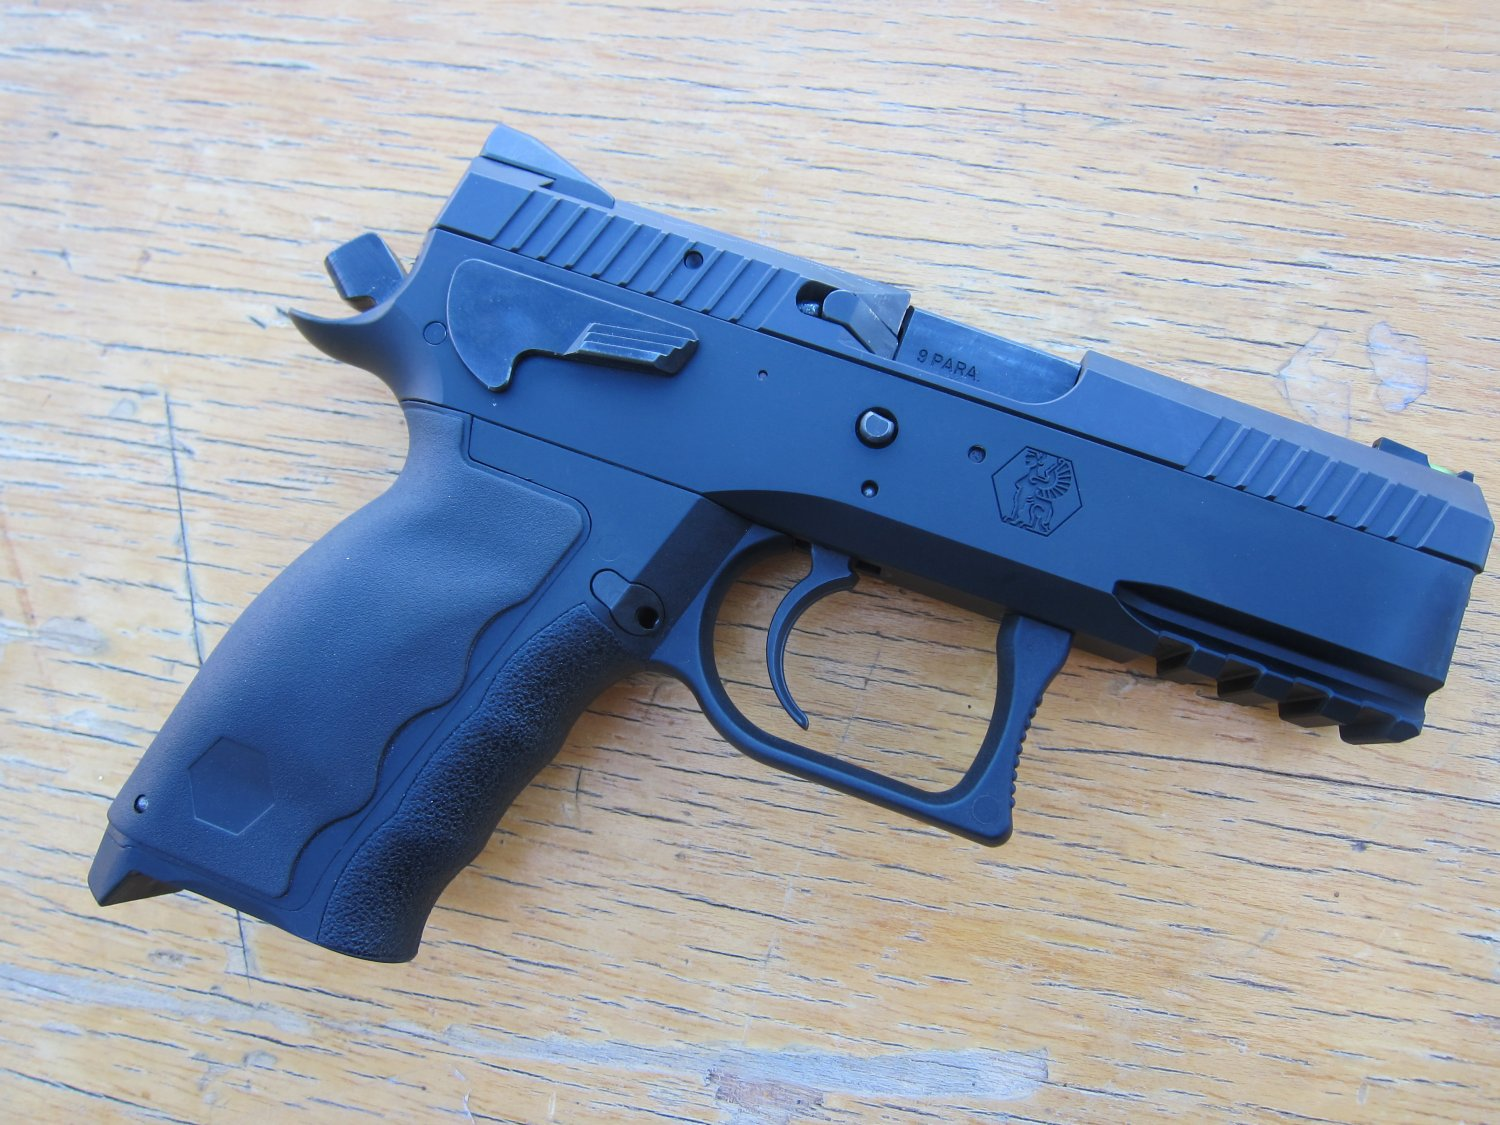 KRISS USA Sphinx SDP Compact High-Capacity 9mm Tactical/Combat Pistol (with DEFIANCE Silencer/Sound Suppressor) Impresses at the Range at SHOT Show 2012 Media Day!